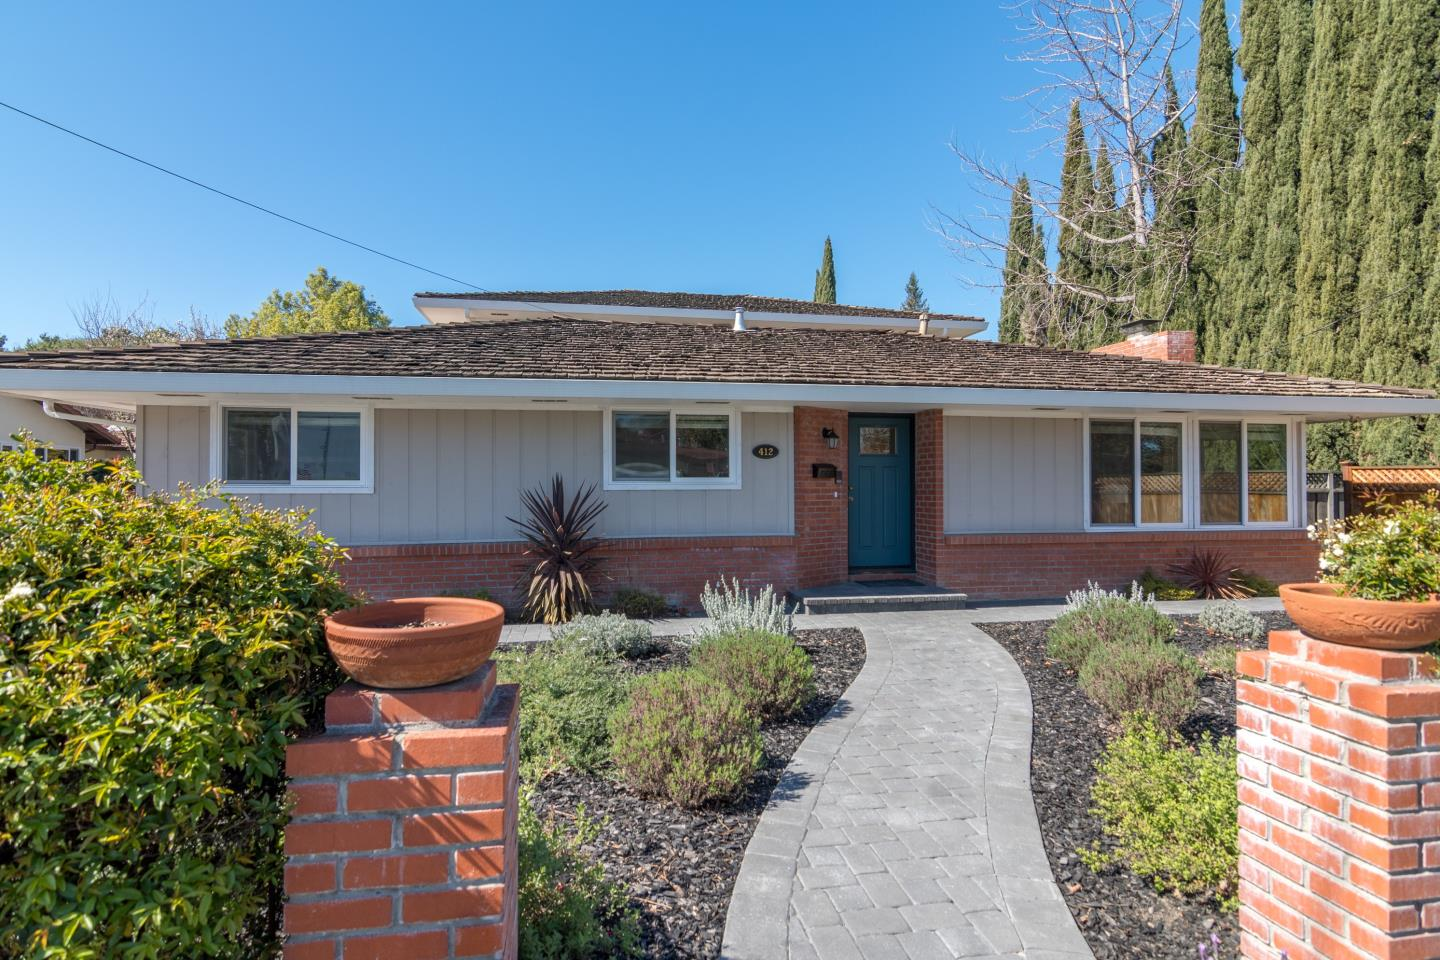 Single Family Home for Sale at 412 Knowles Avenue 412 Knowles Avenue Santa Clara, California 95050 United States